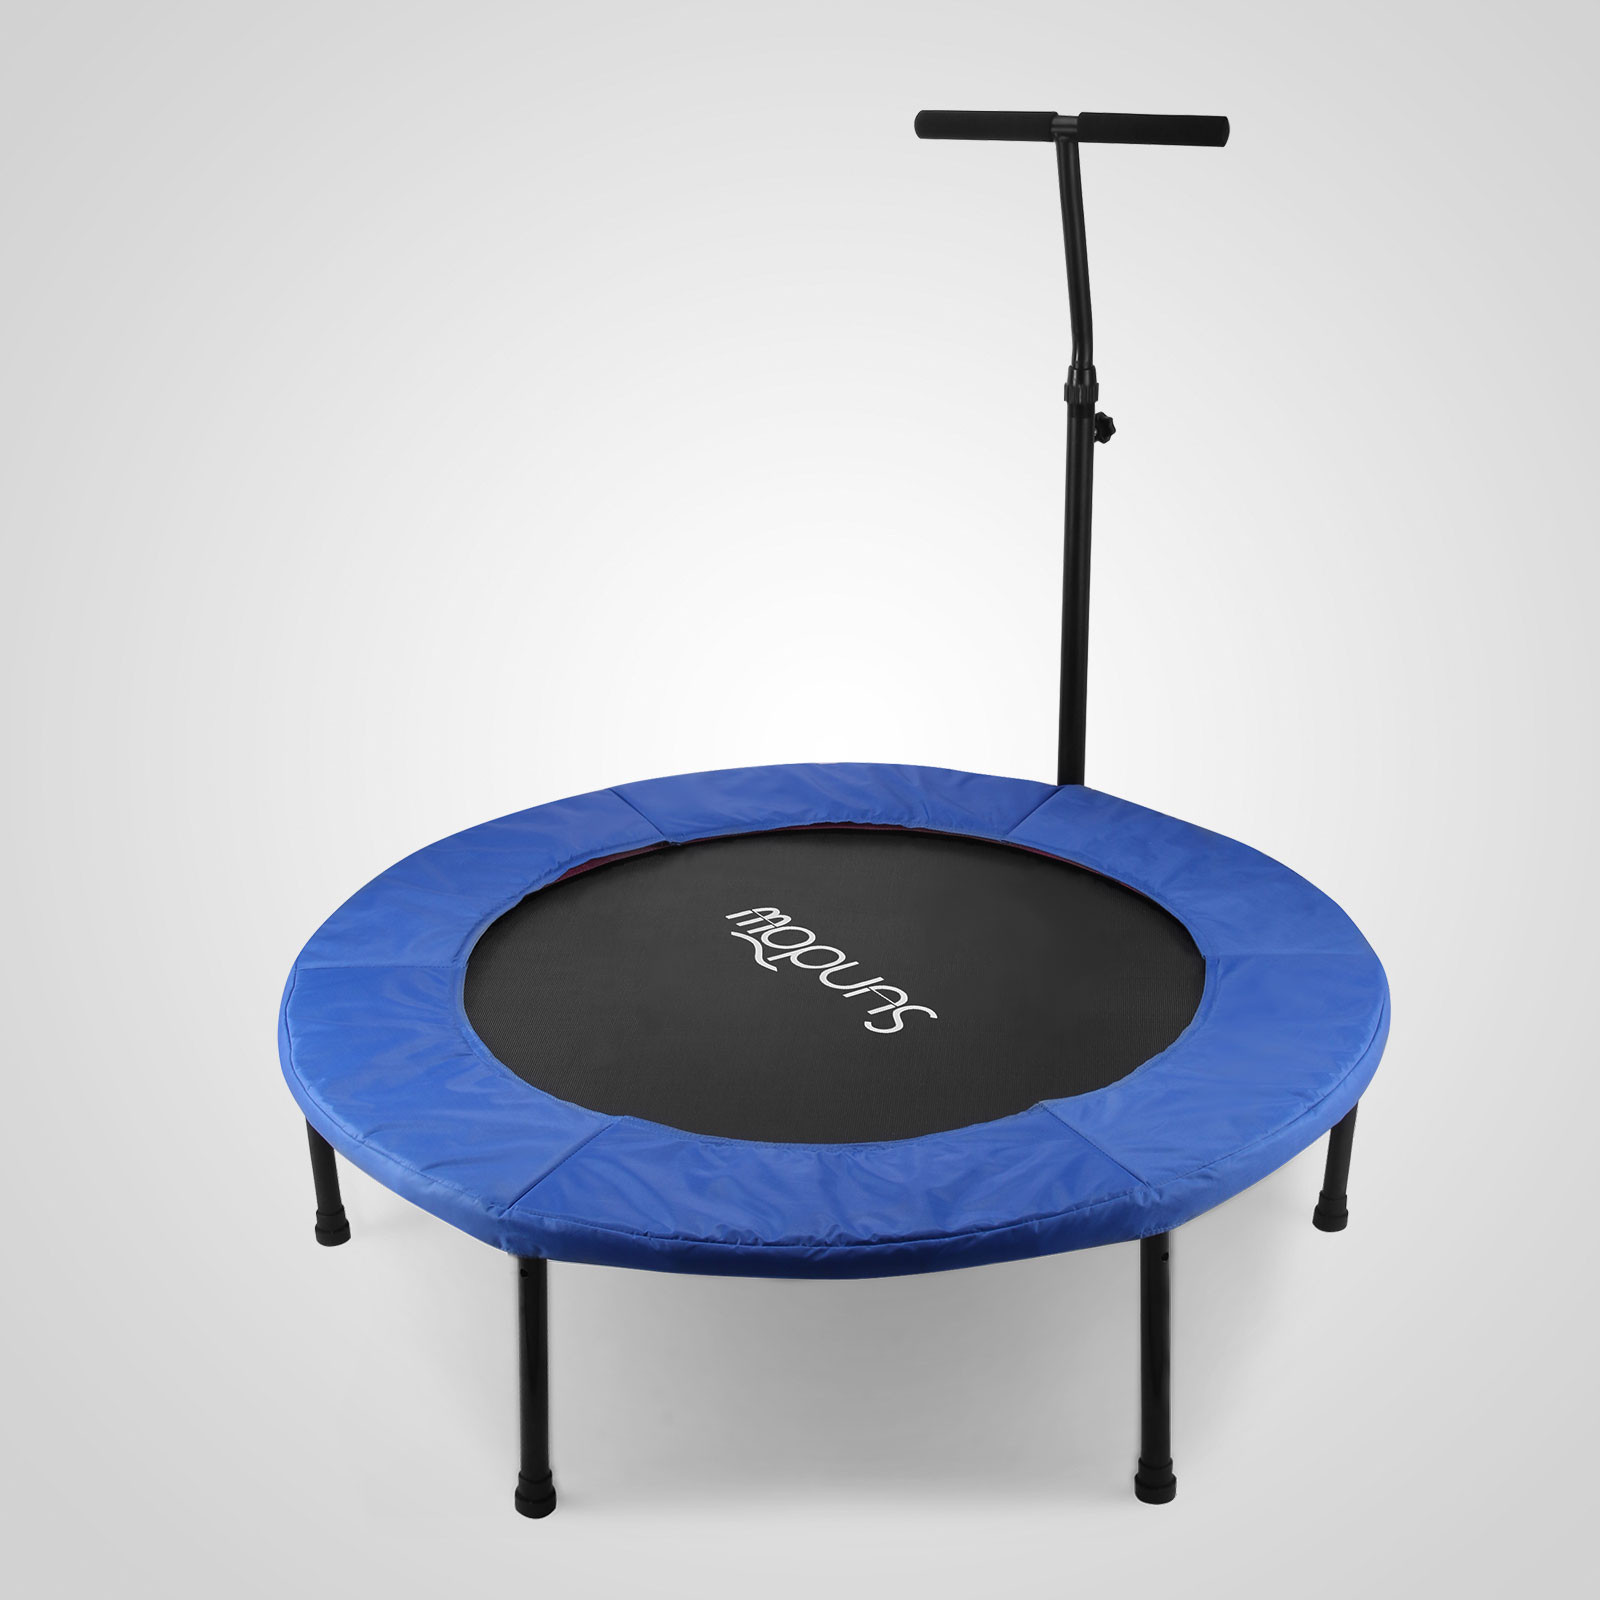 40 Quot Mini Trampoline Fitness Jumper Gym Jump Kids Play With